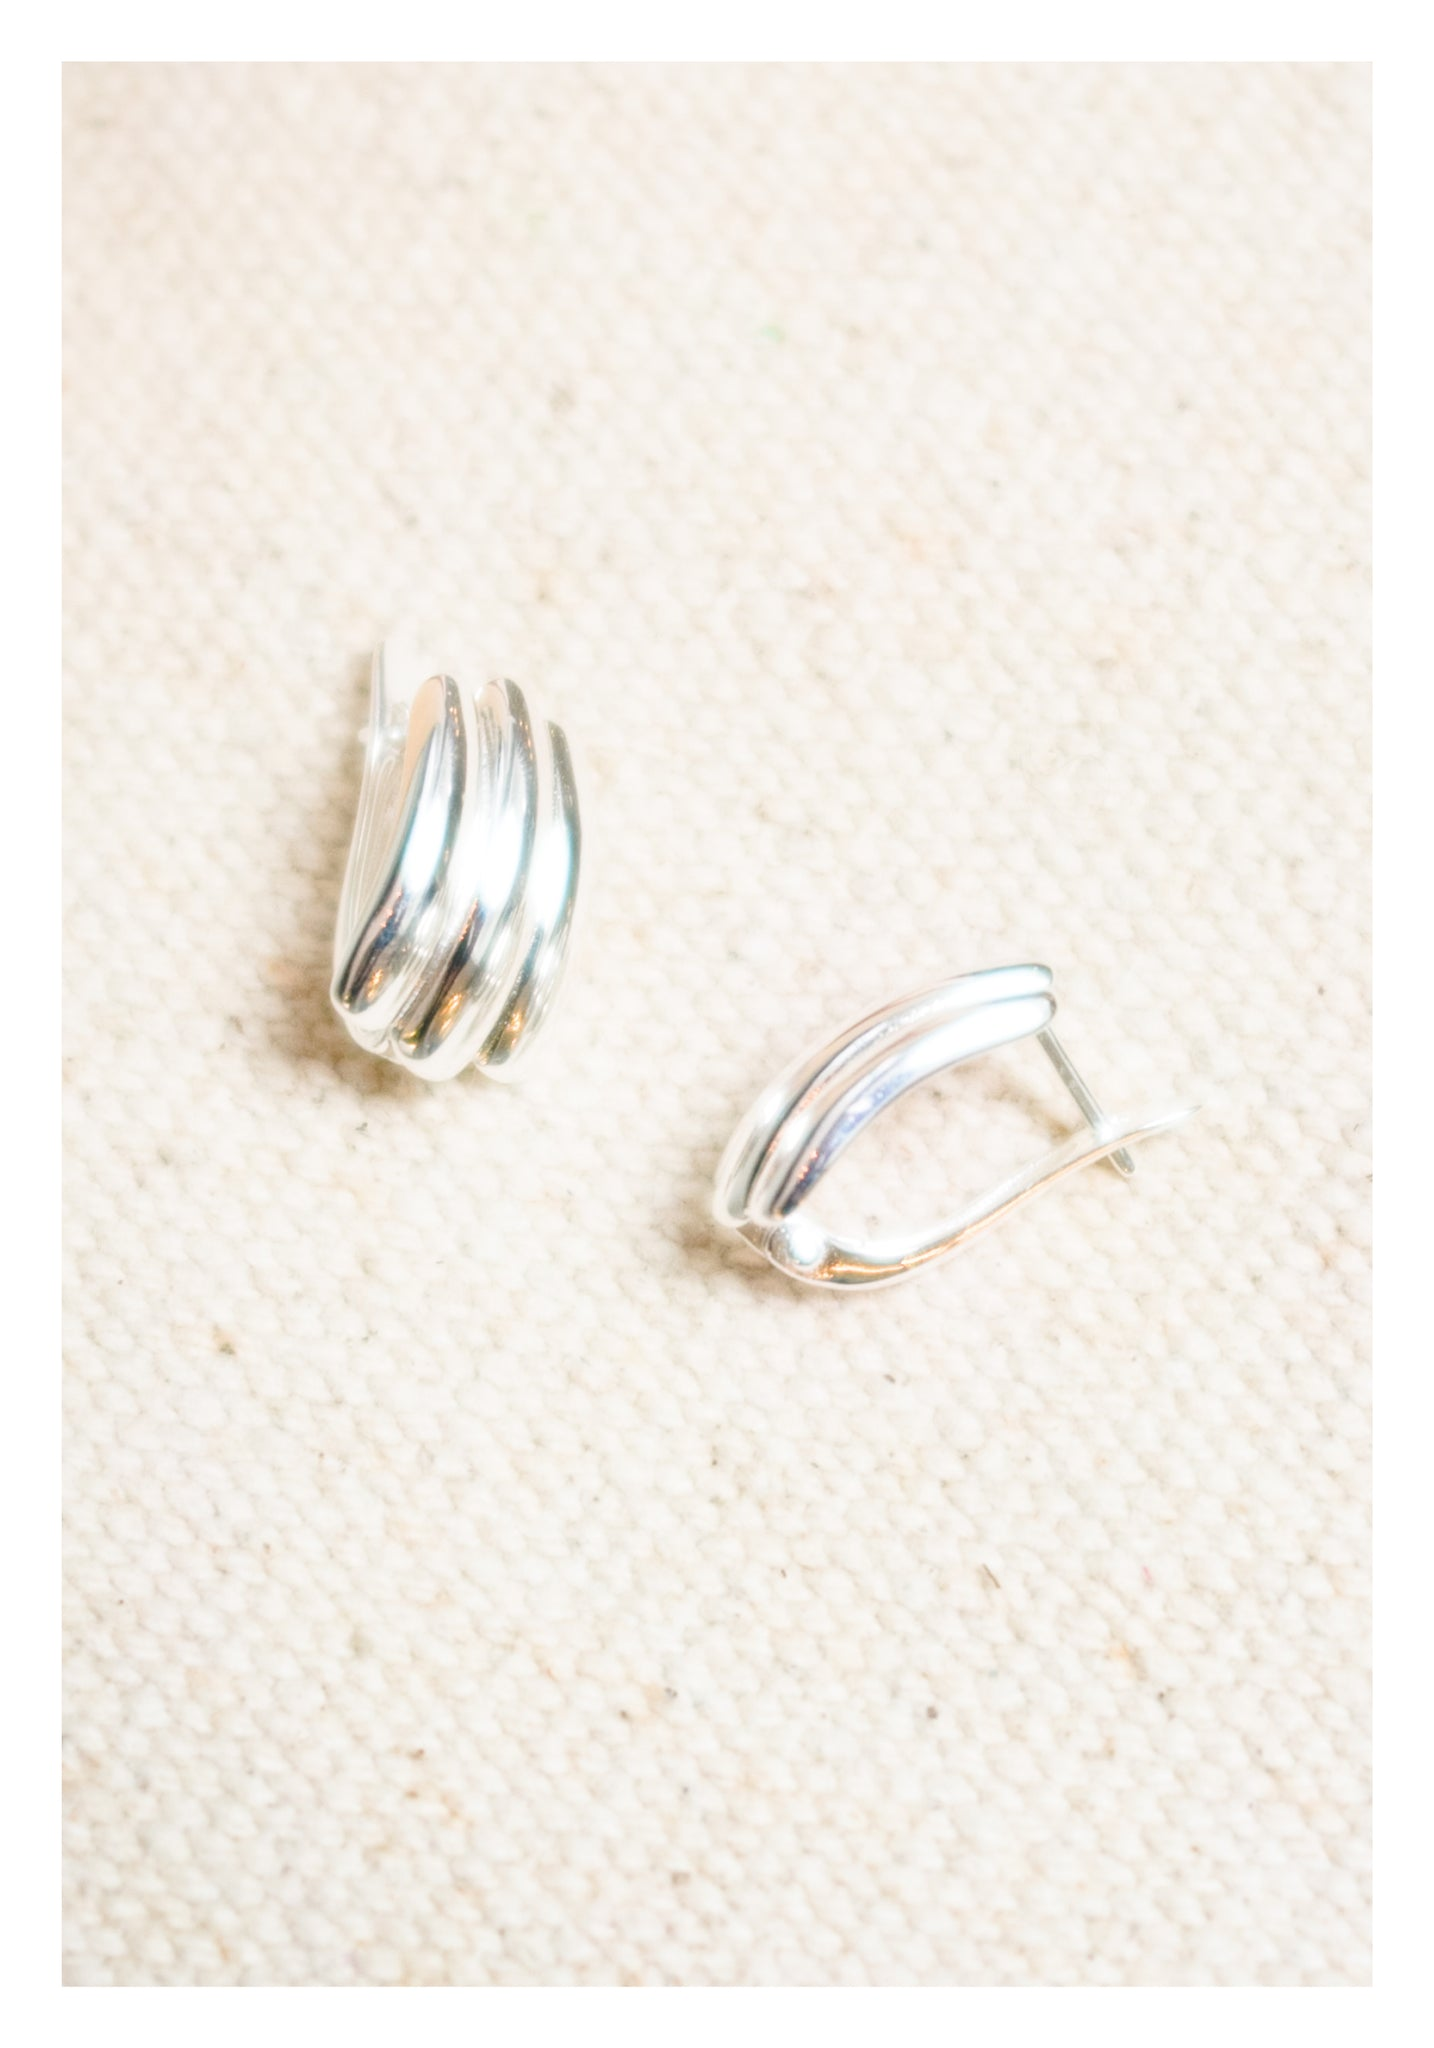 925 Silver 3 Bars Earrings - whoami